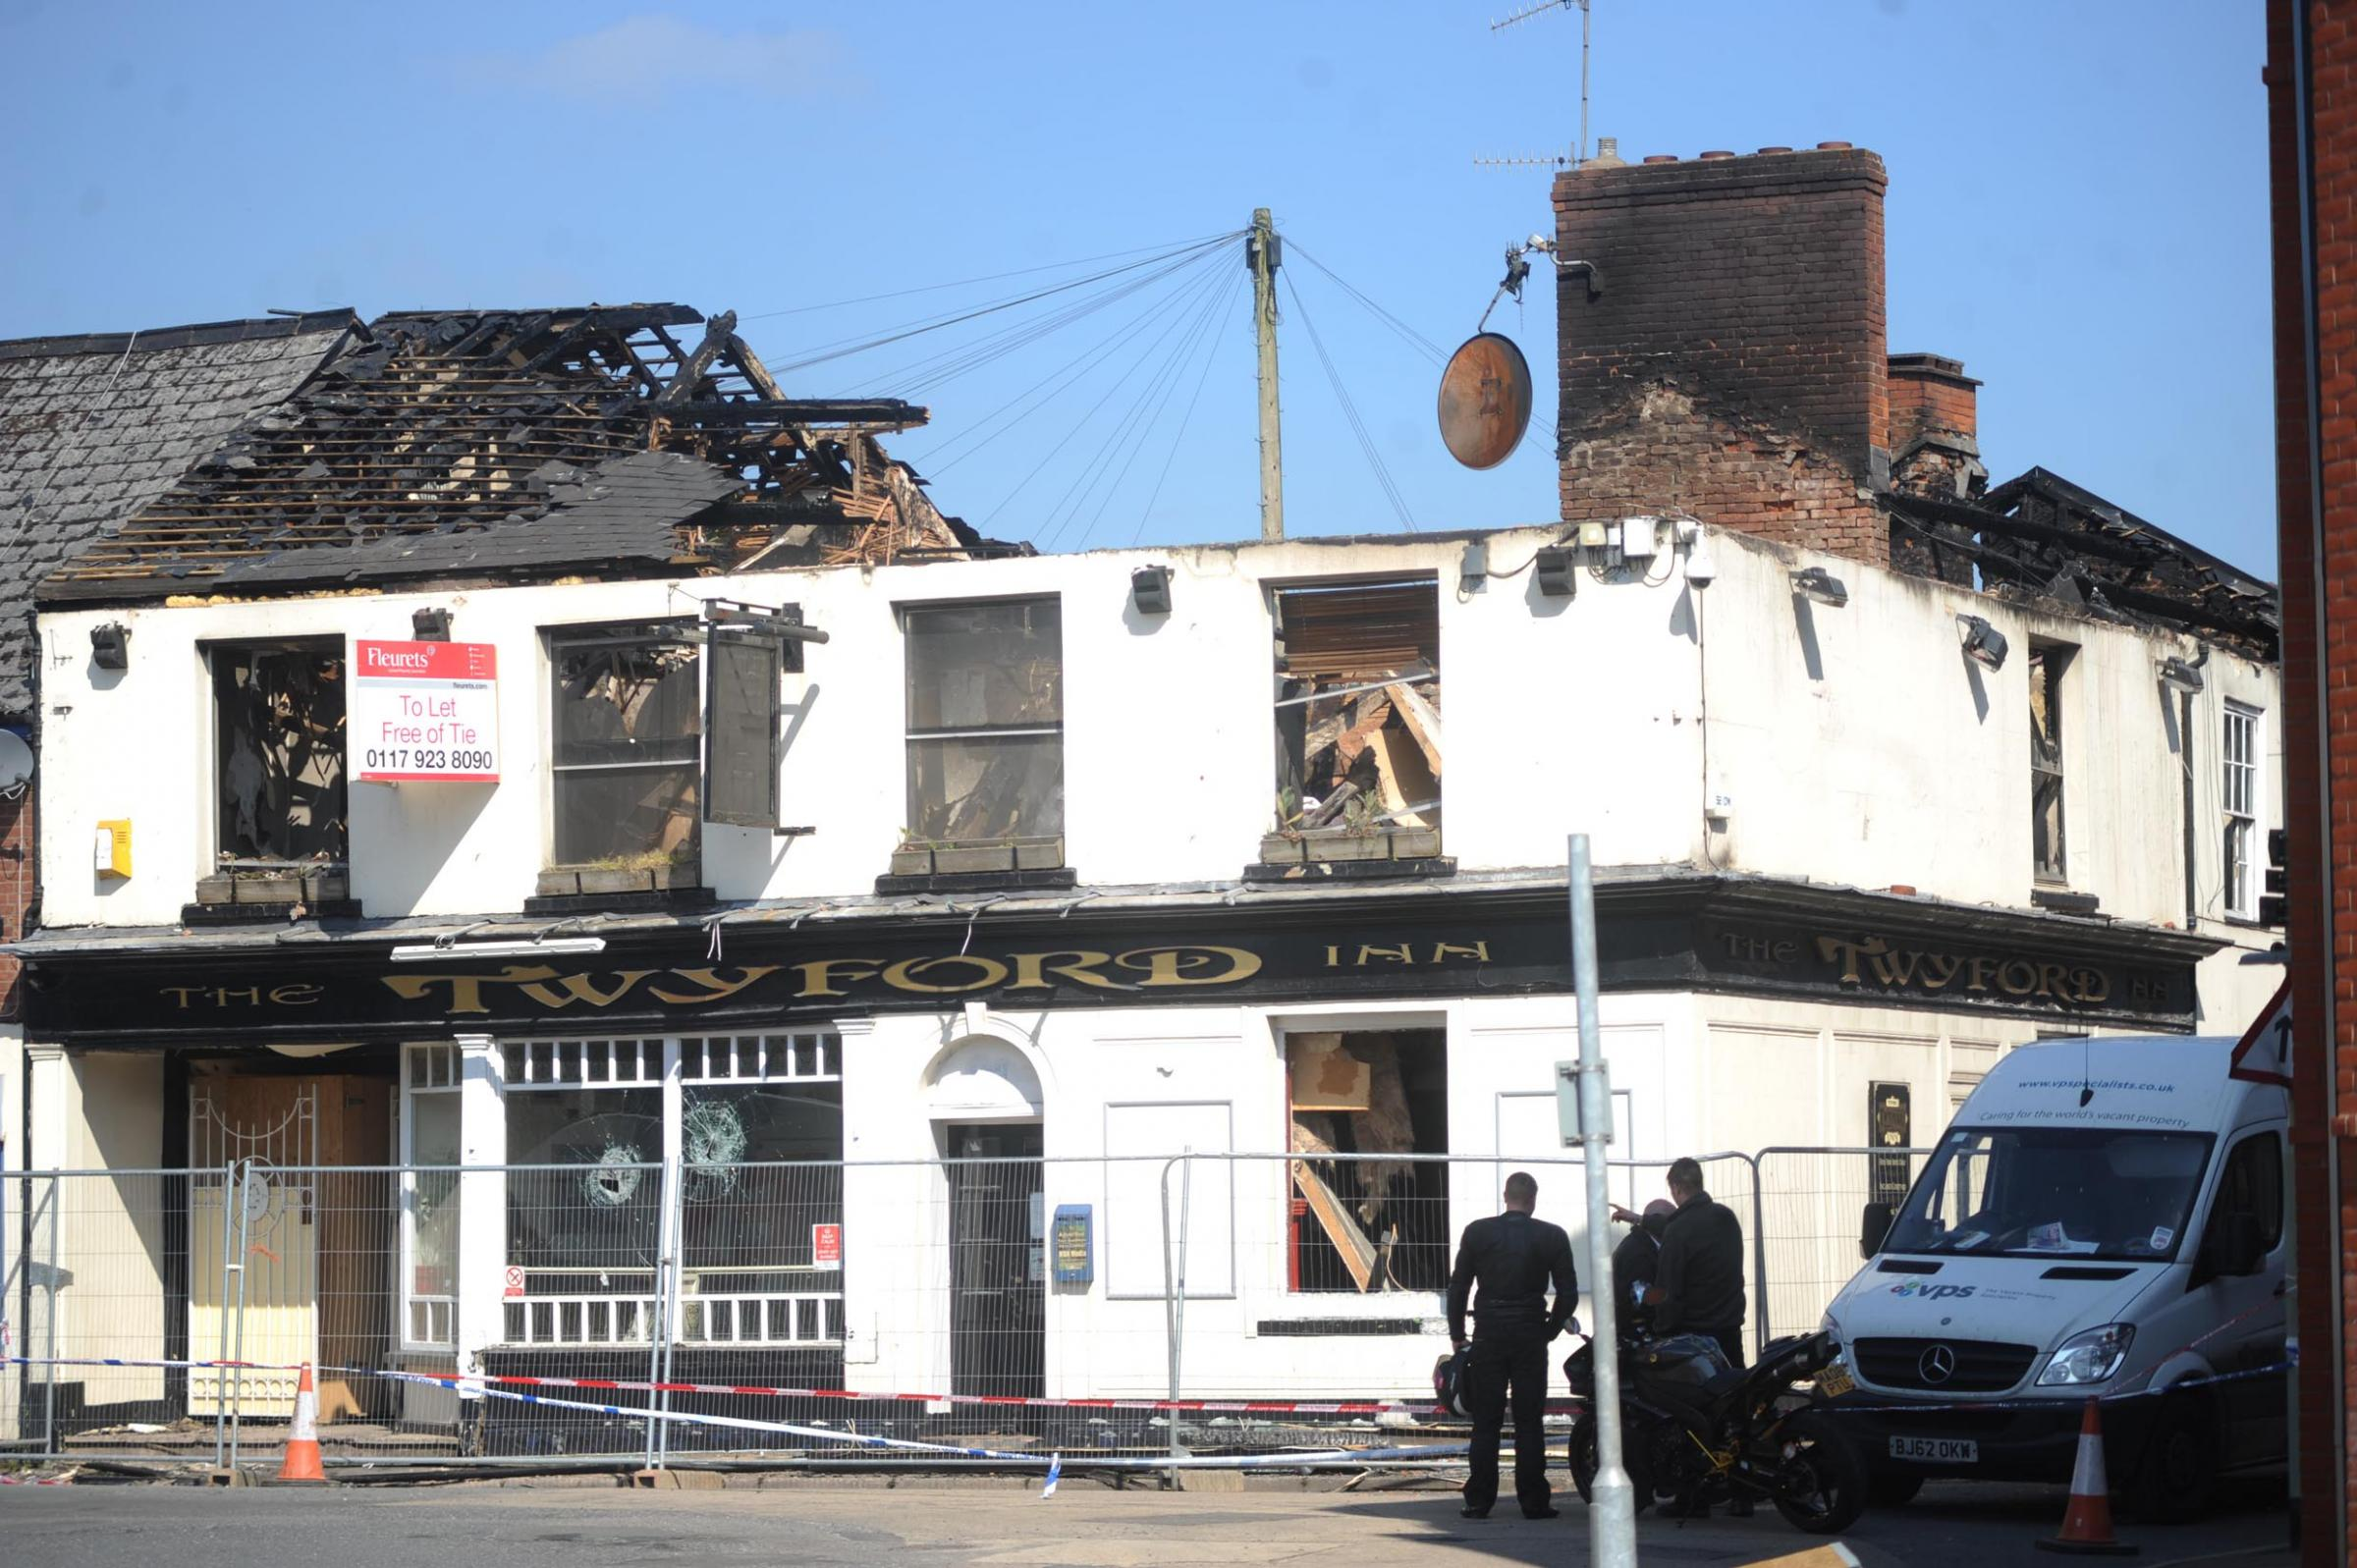 Save our pub - residents campaign to preserve building's pub status